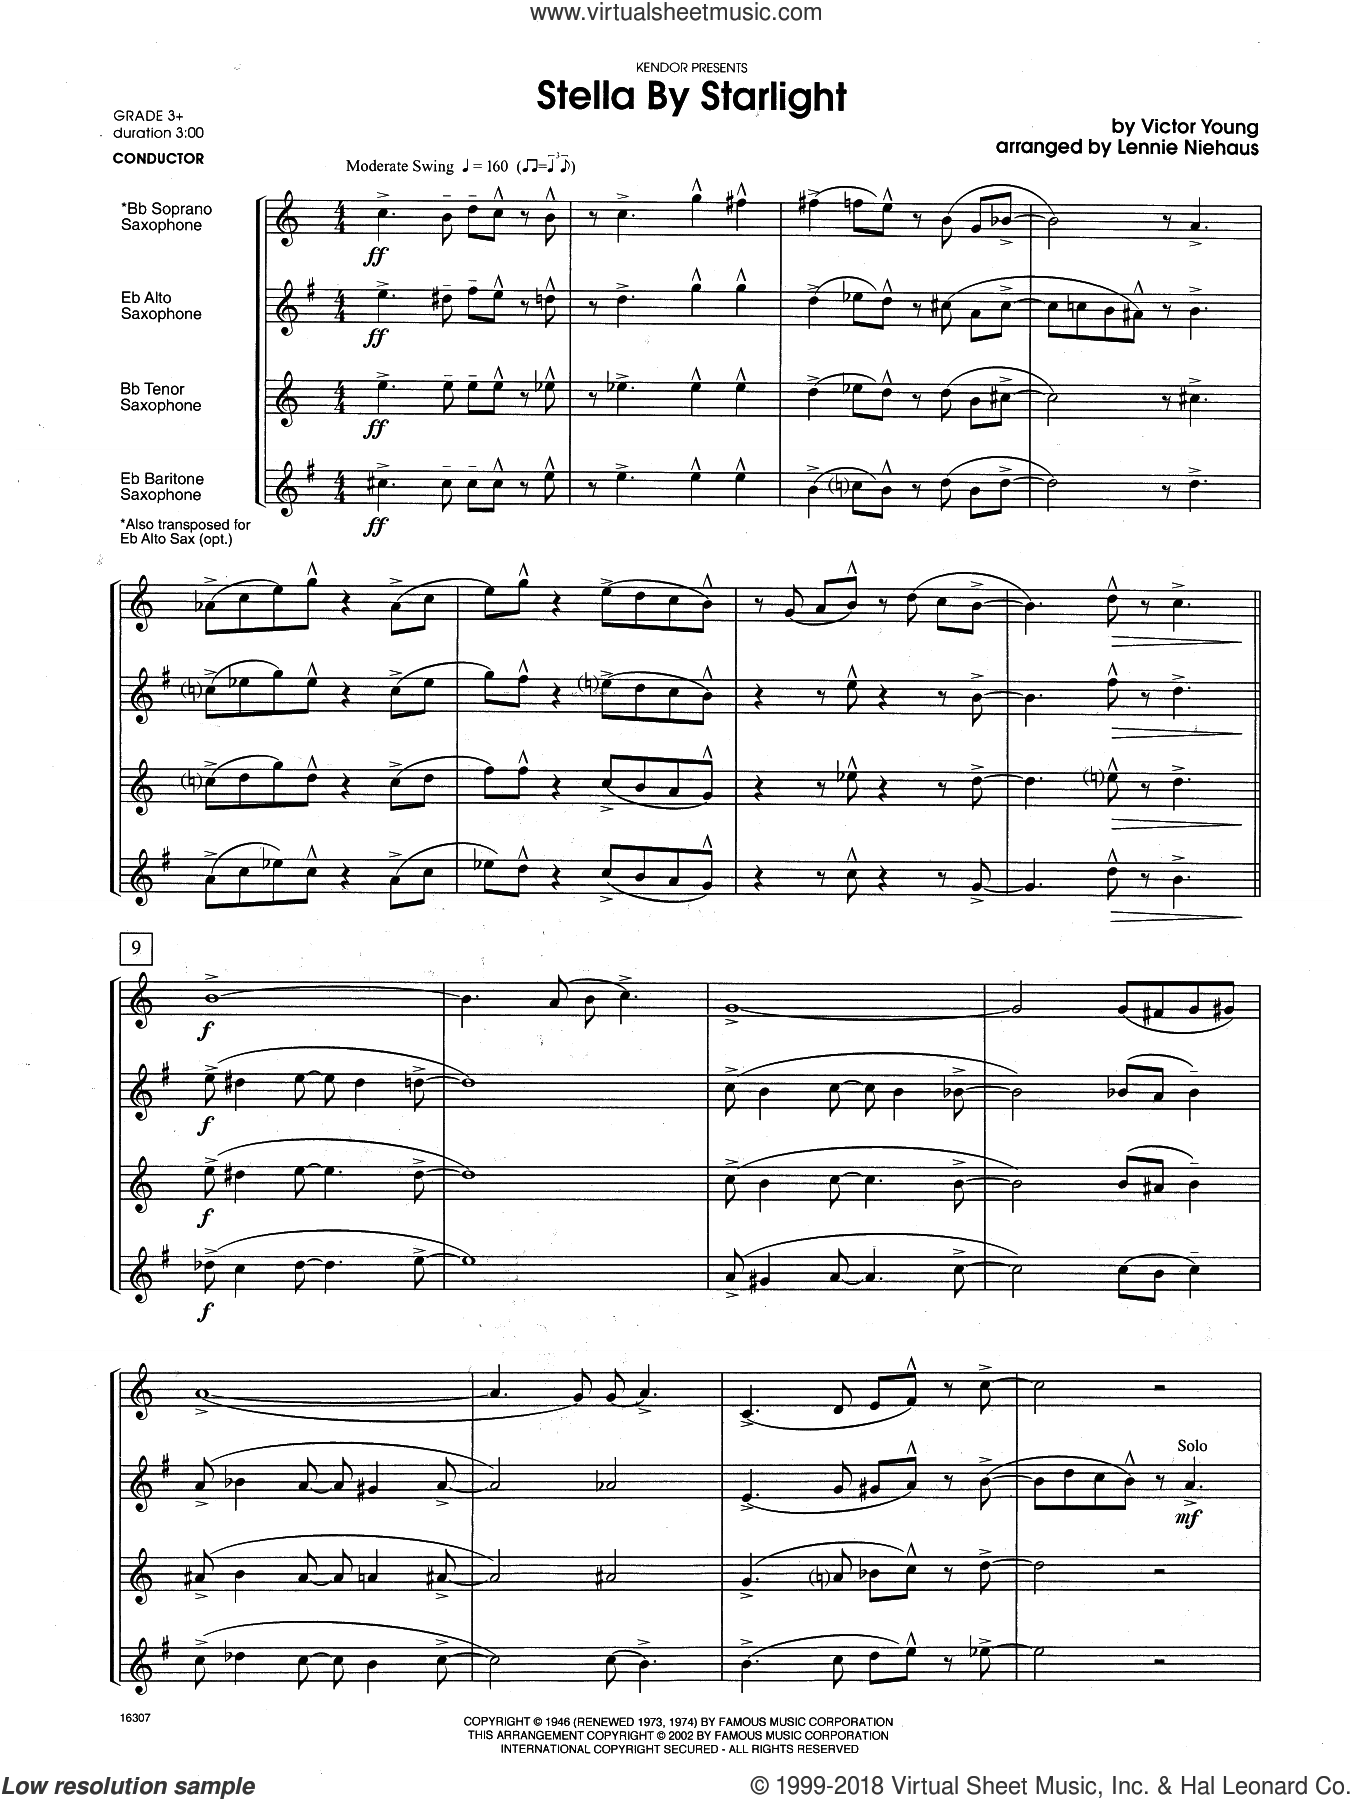 Stella By Starlight (from the Paramount Picture The Uninvited) (COMPLETE) sheet music for saxophone quartet by Lennie Niehaus and Adam Young, intermediate saxophone quartet. Score Image Preview.